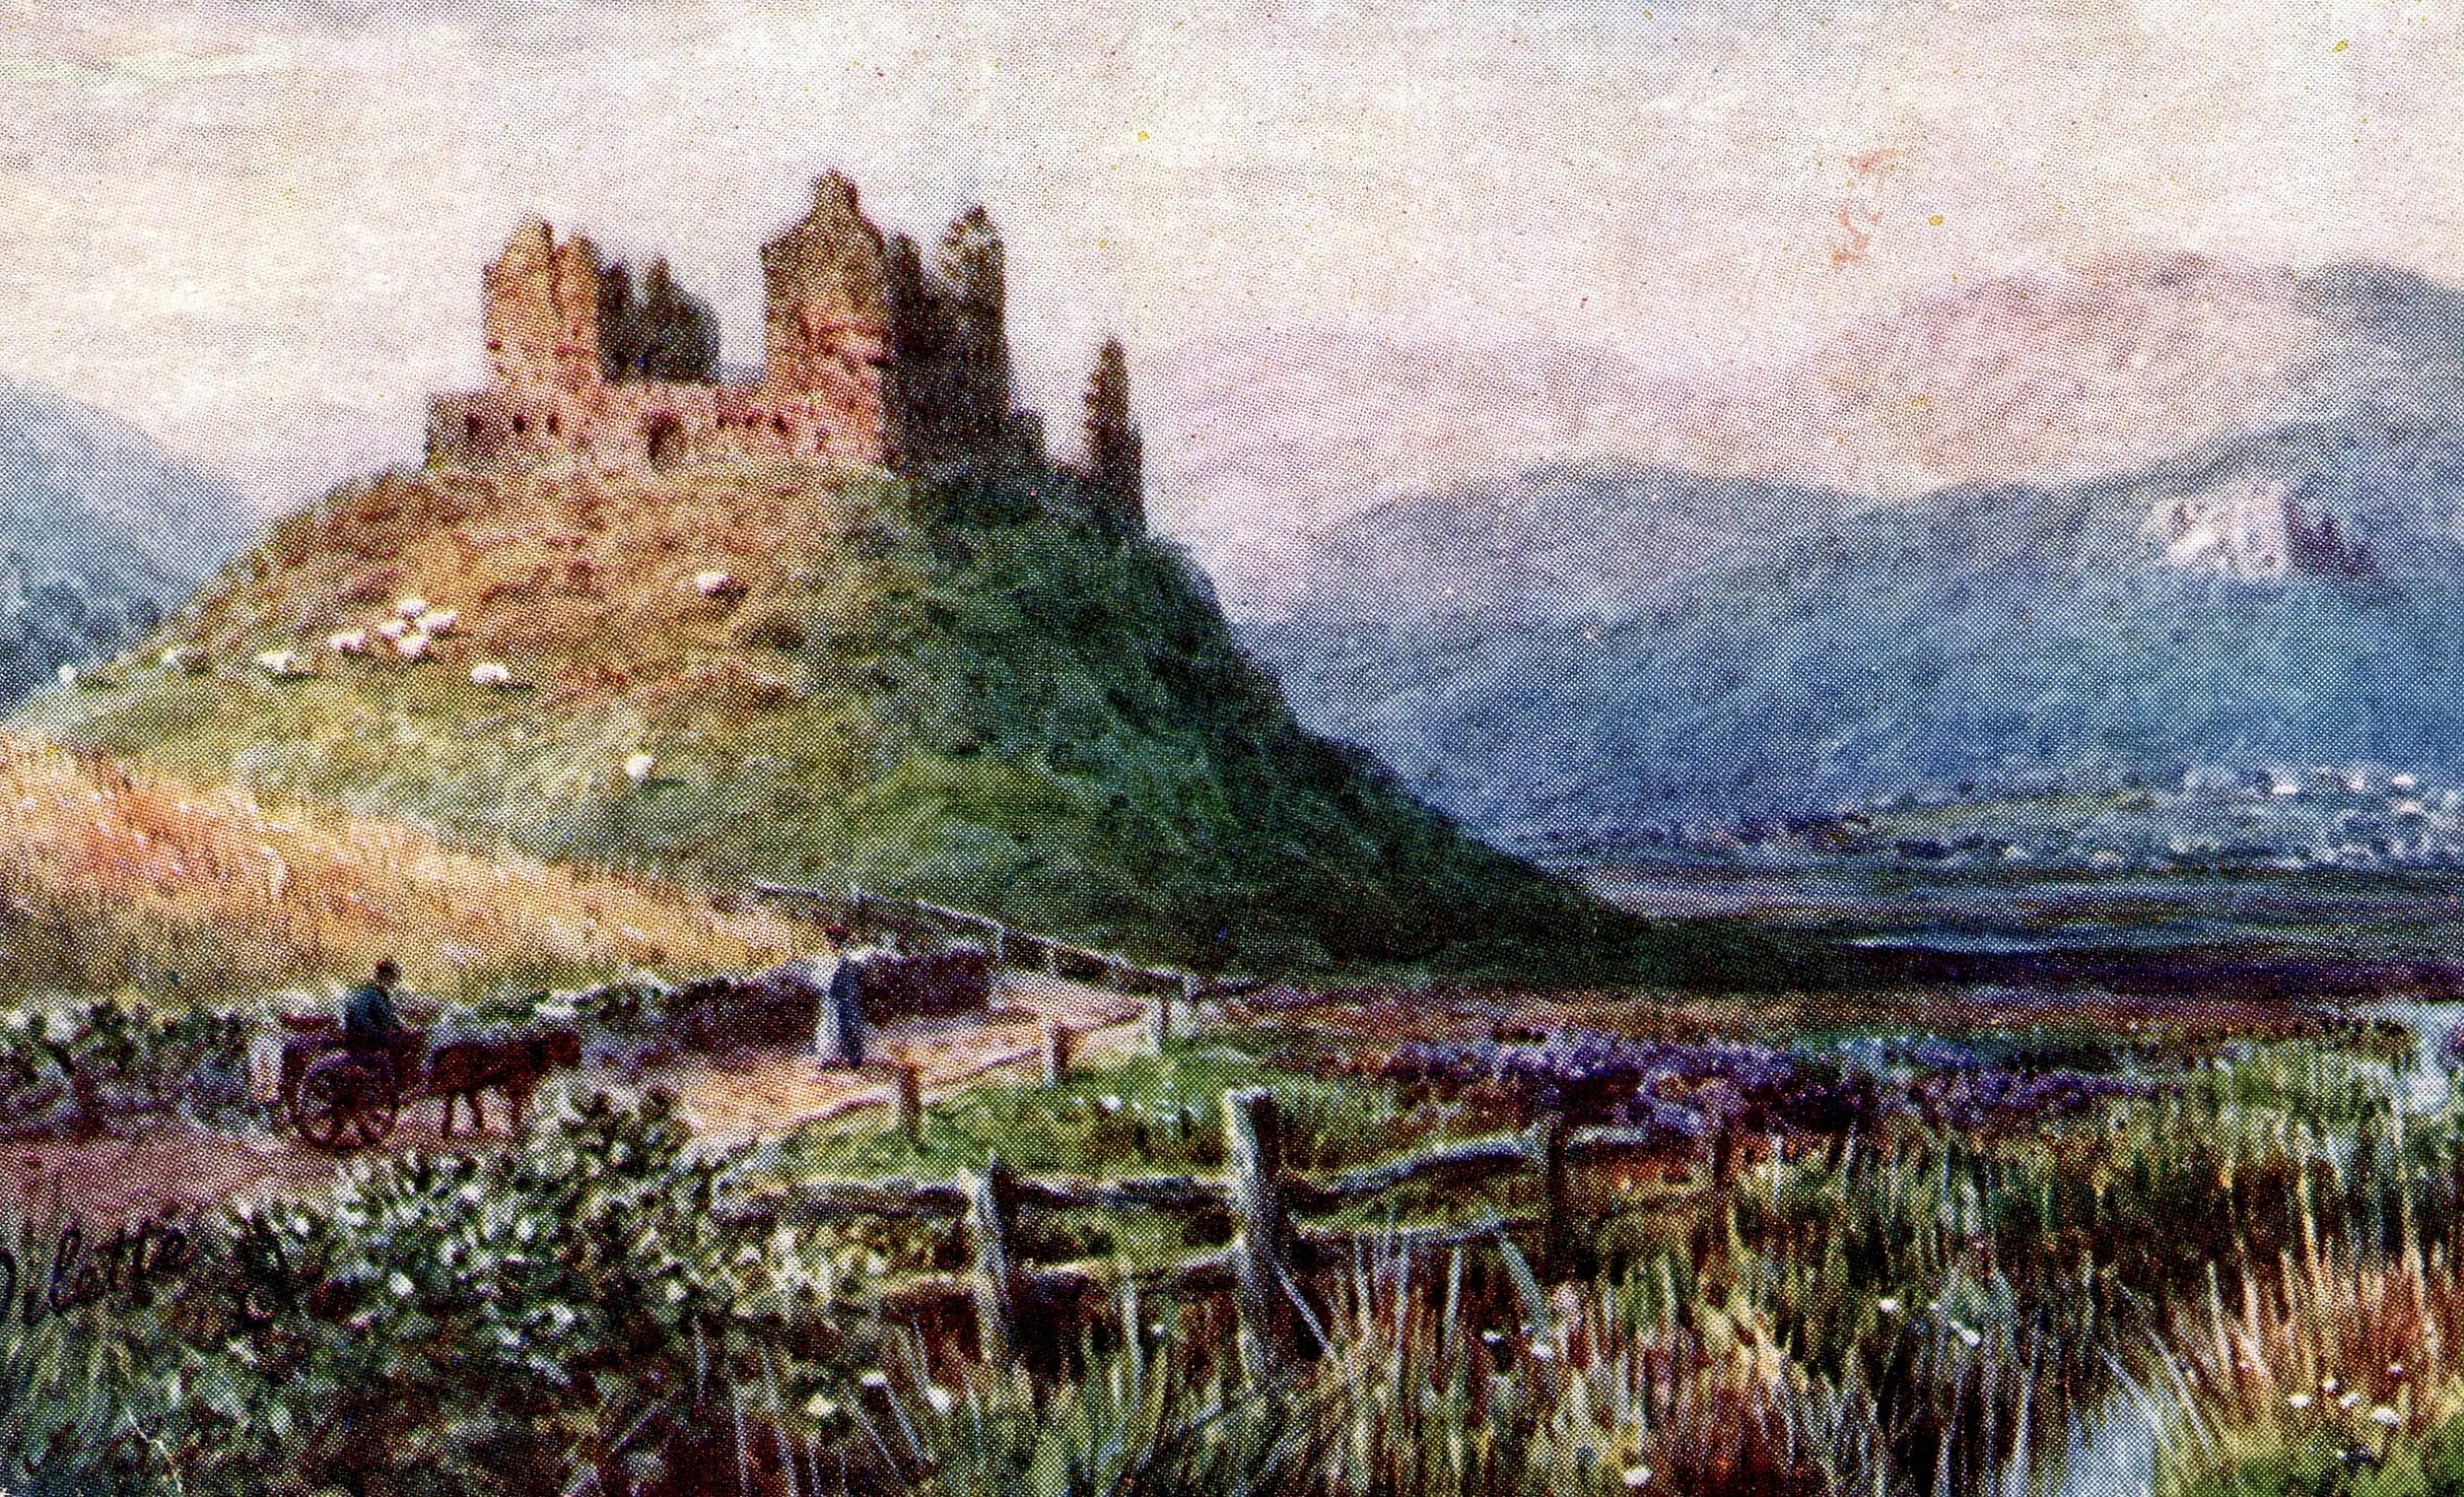 Ruthven Castle, Scotland